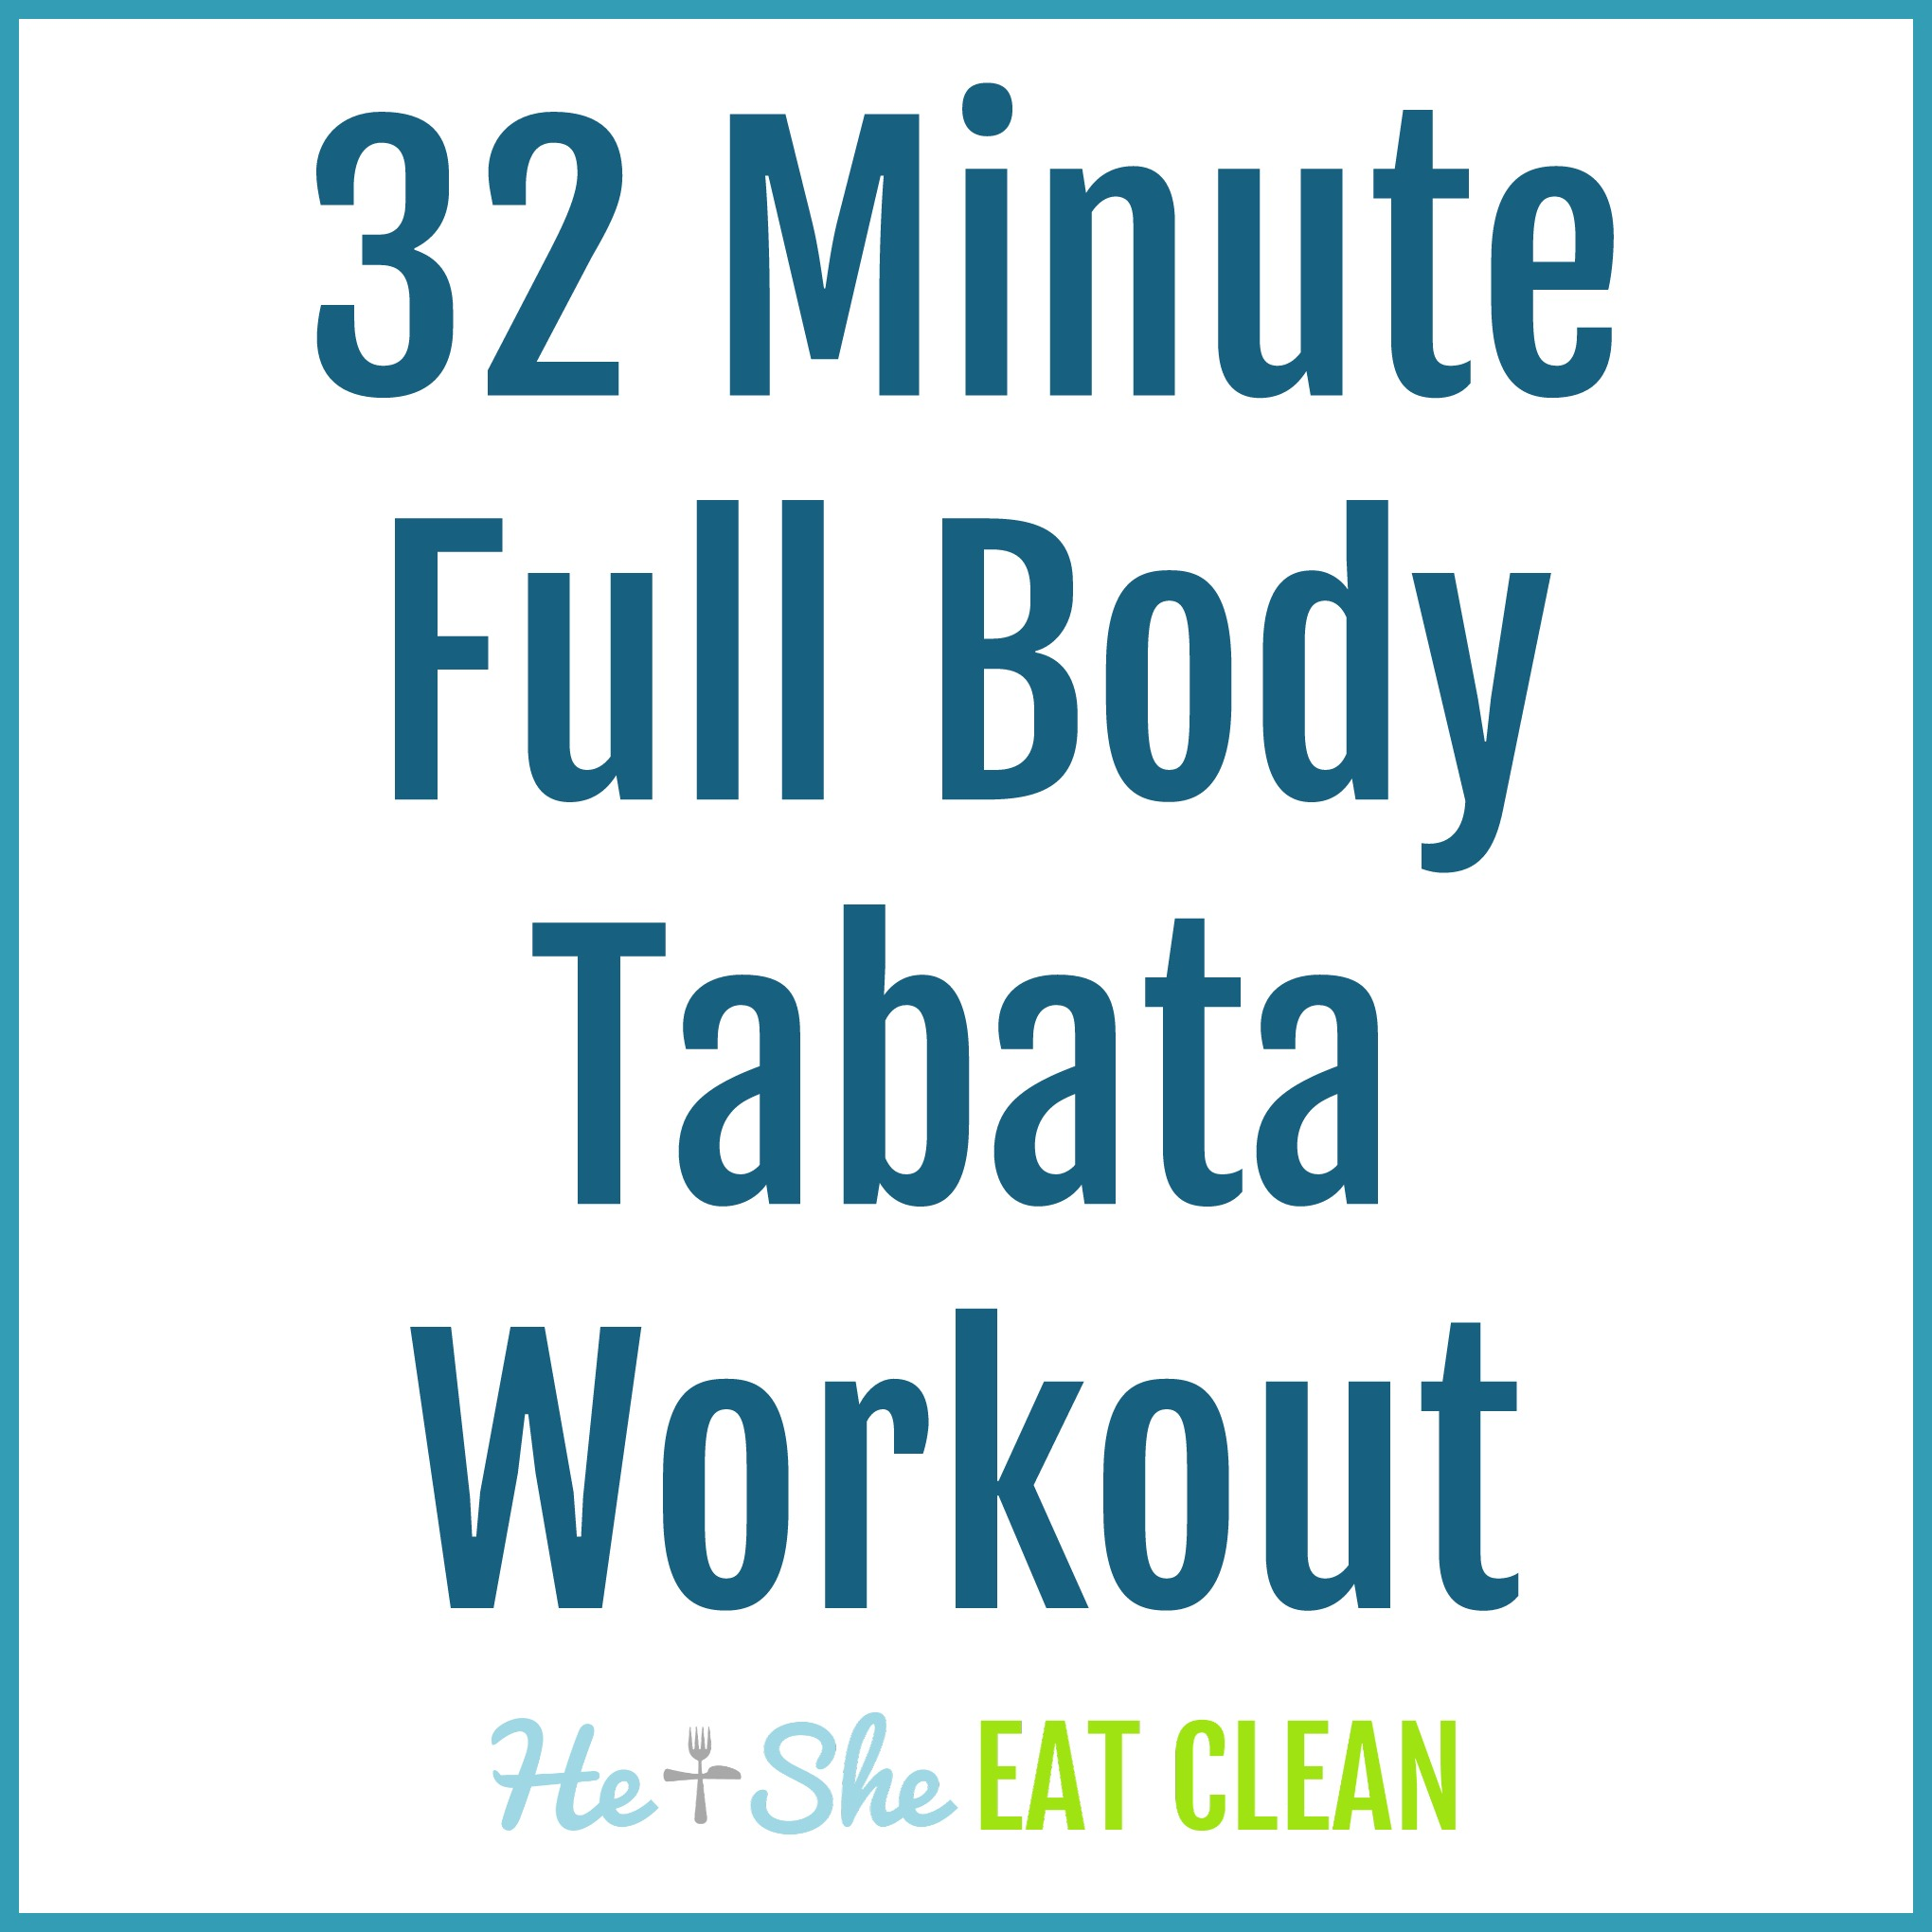 32 Minute Full Body Tabata Workout